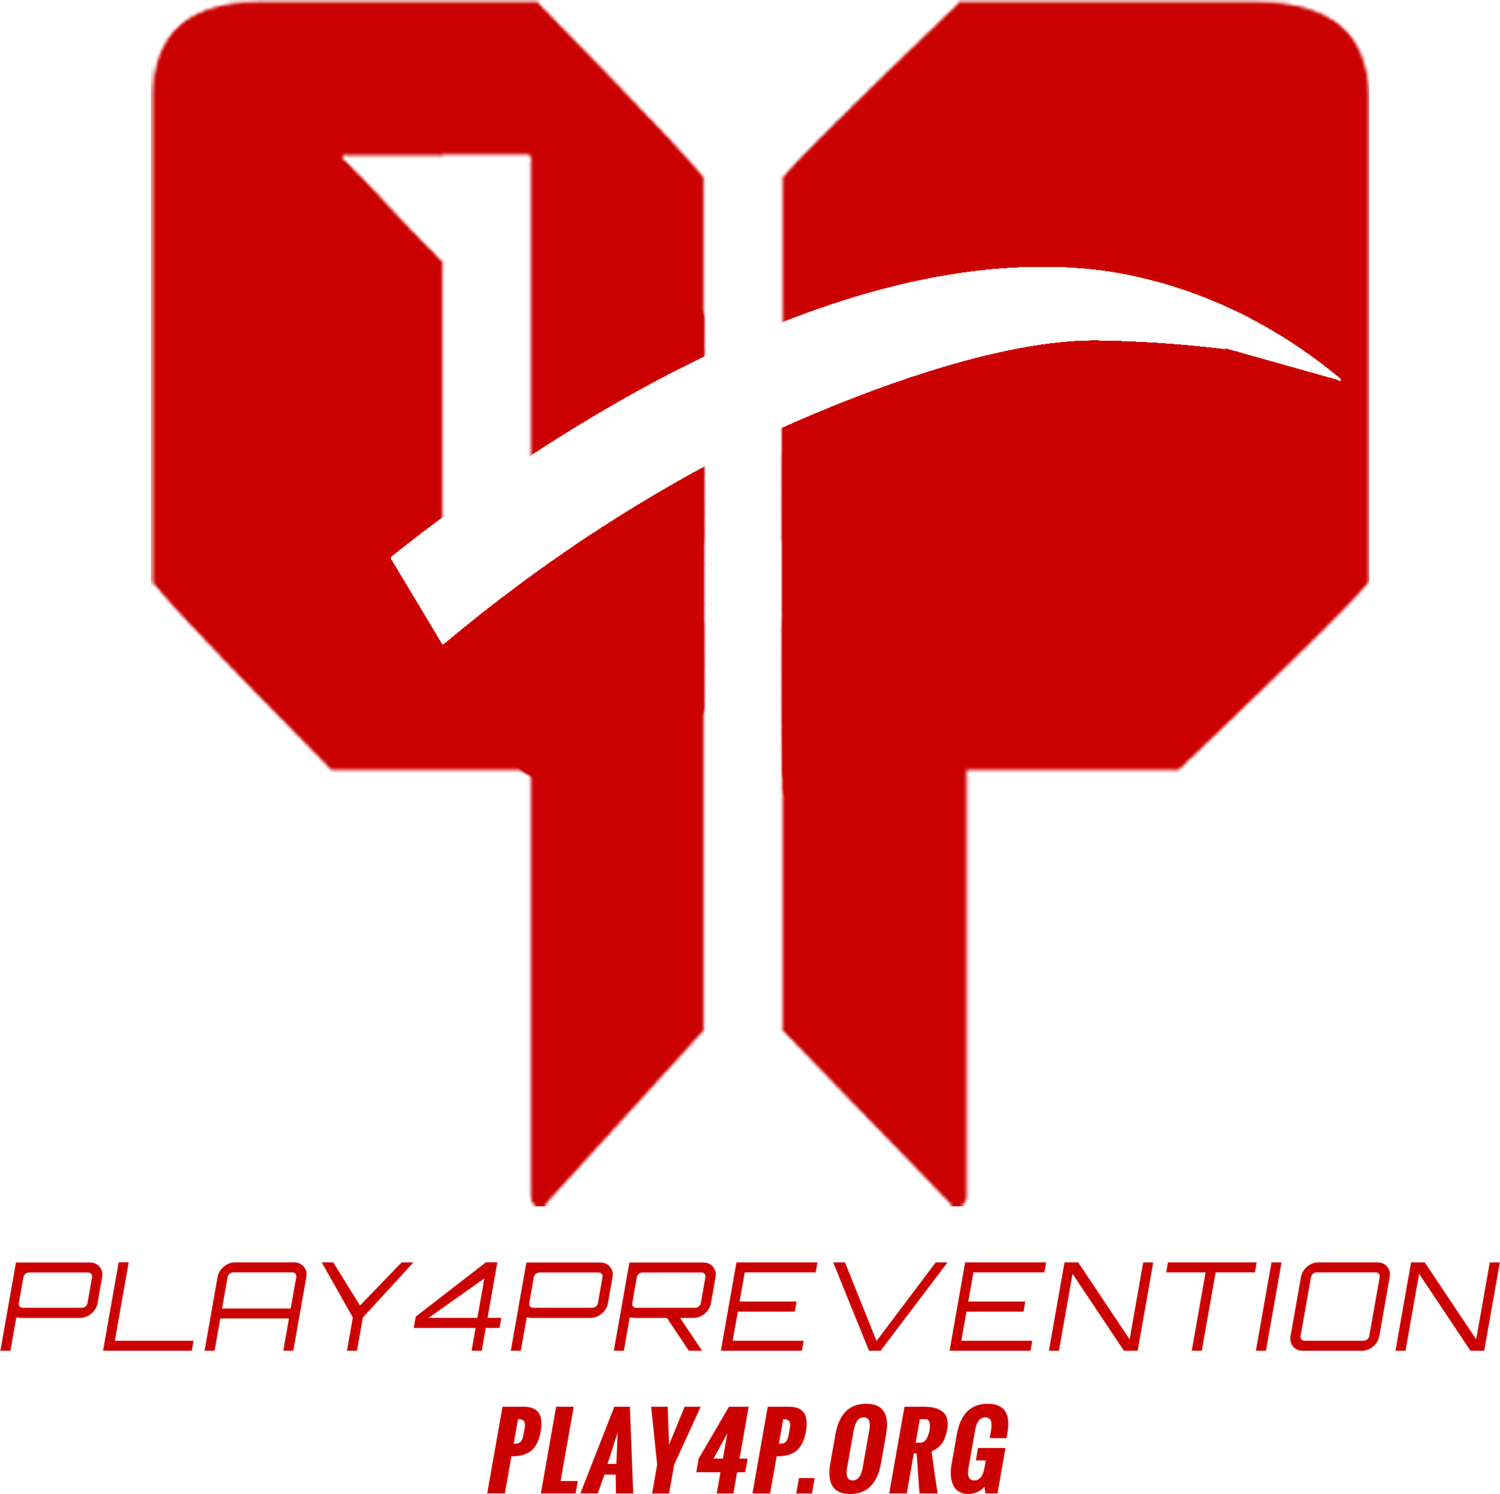 Play4Prevention